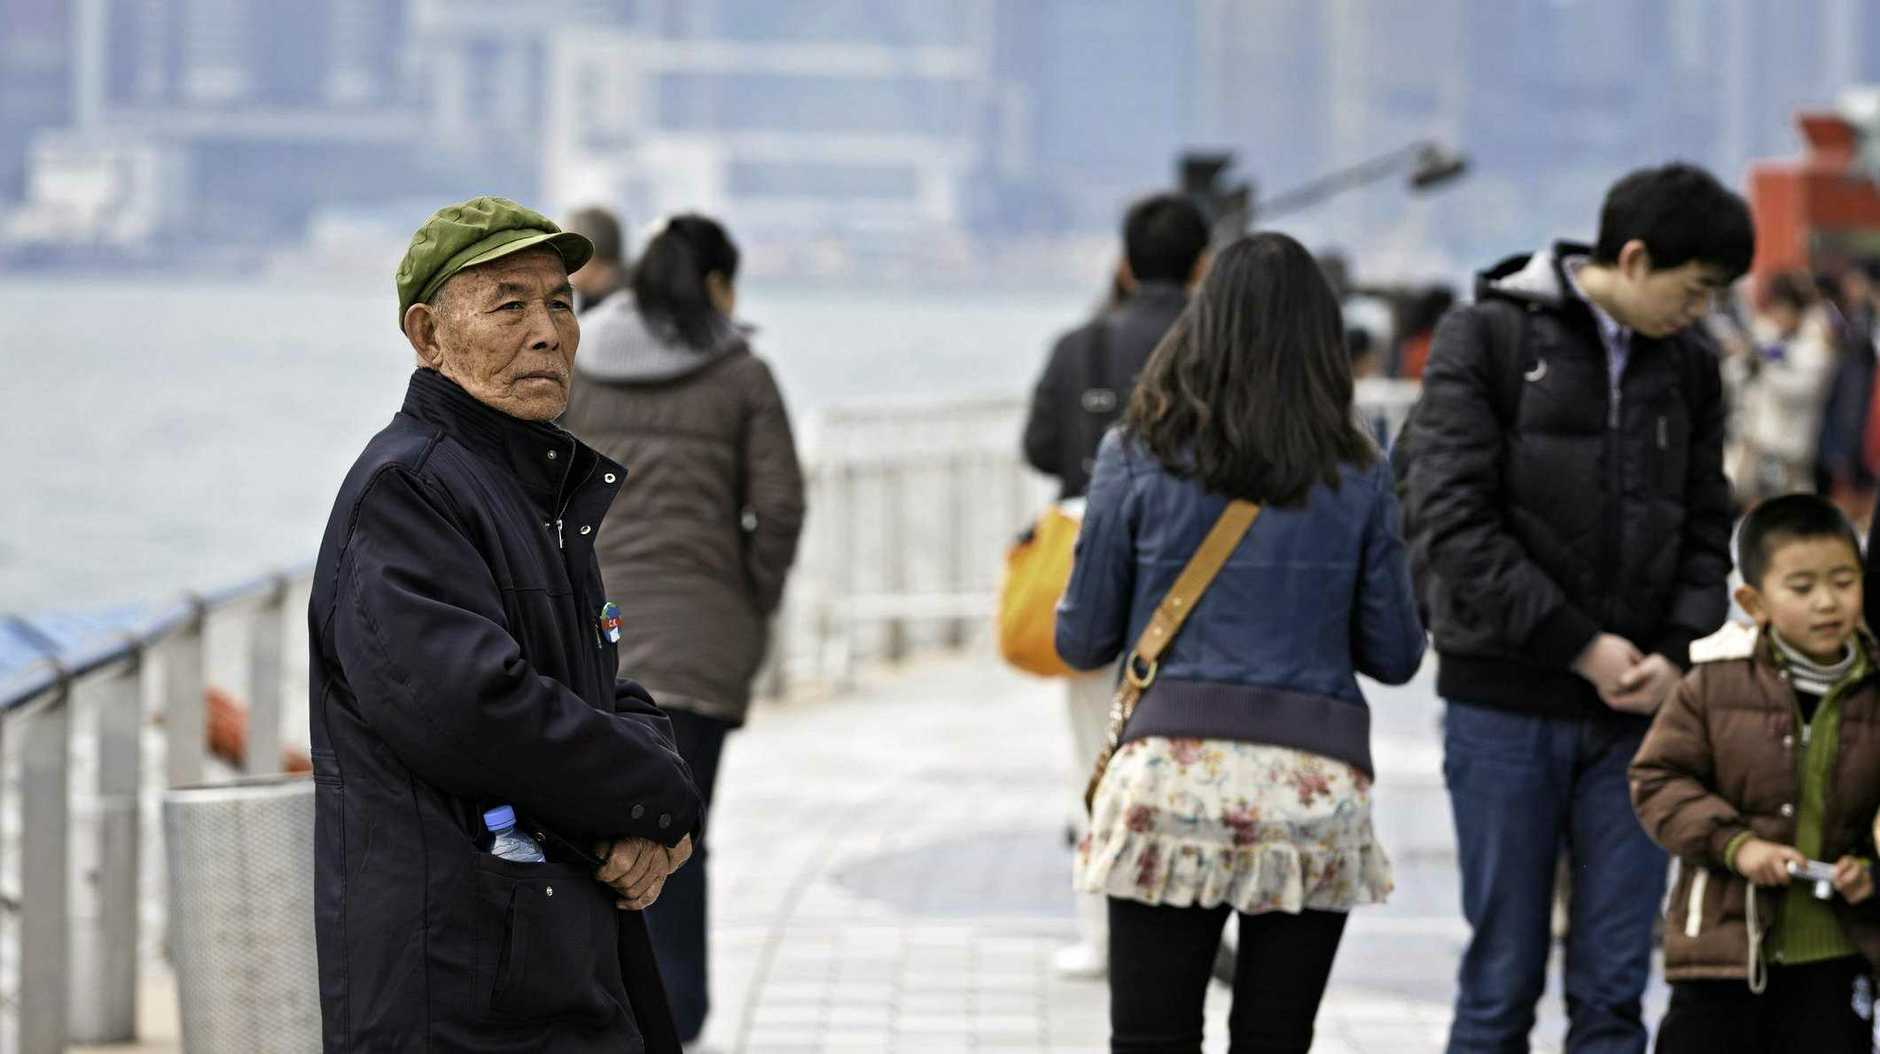 What's happening in China as it's population of over 80s rapidly increases could have the biggest impact on the rest of the world.